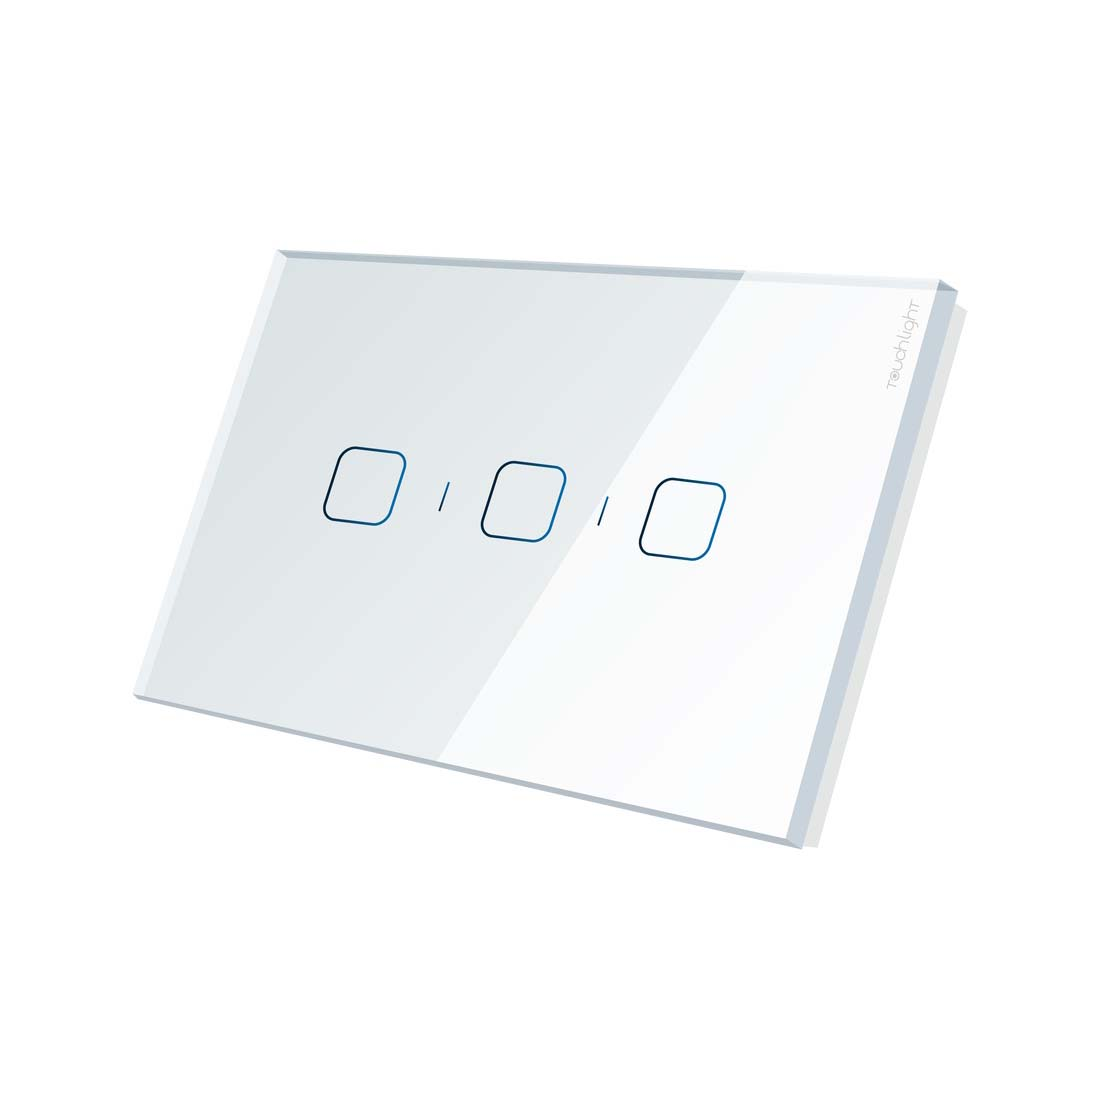 Interruptor 4x2 de 3 botões ON/OFF TL42-N3-SR Branco - TOUCHLIGHT